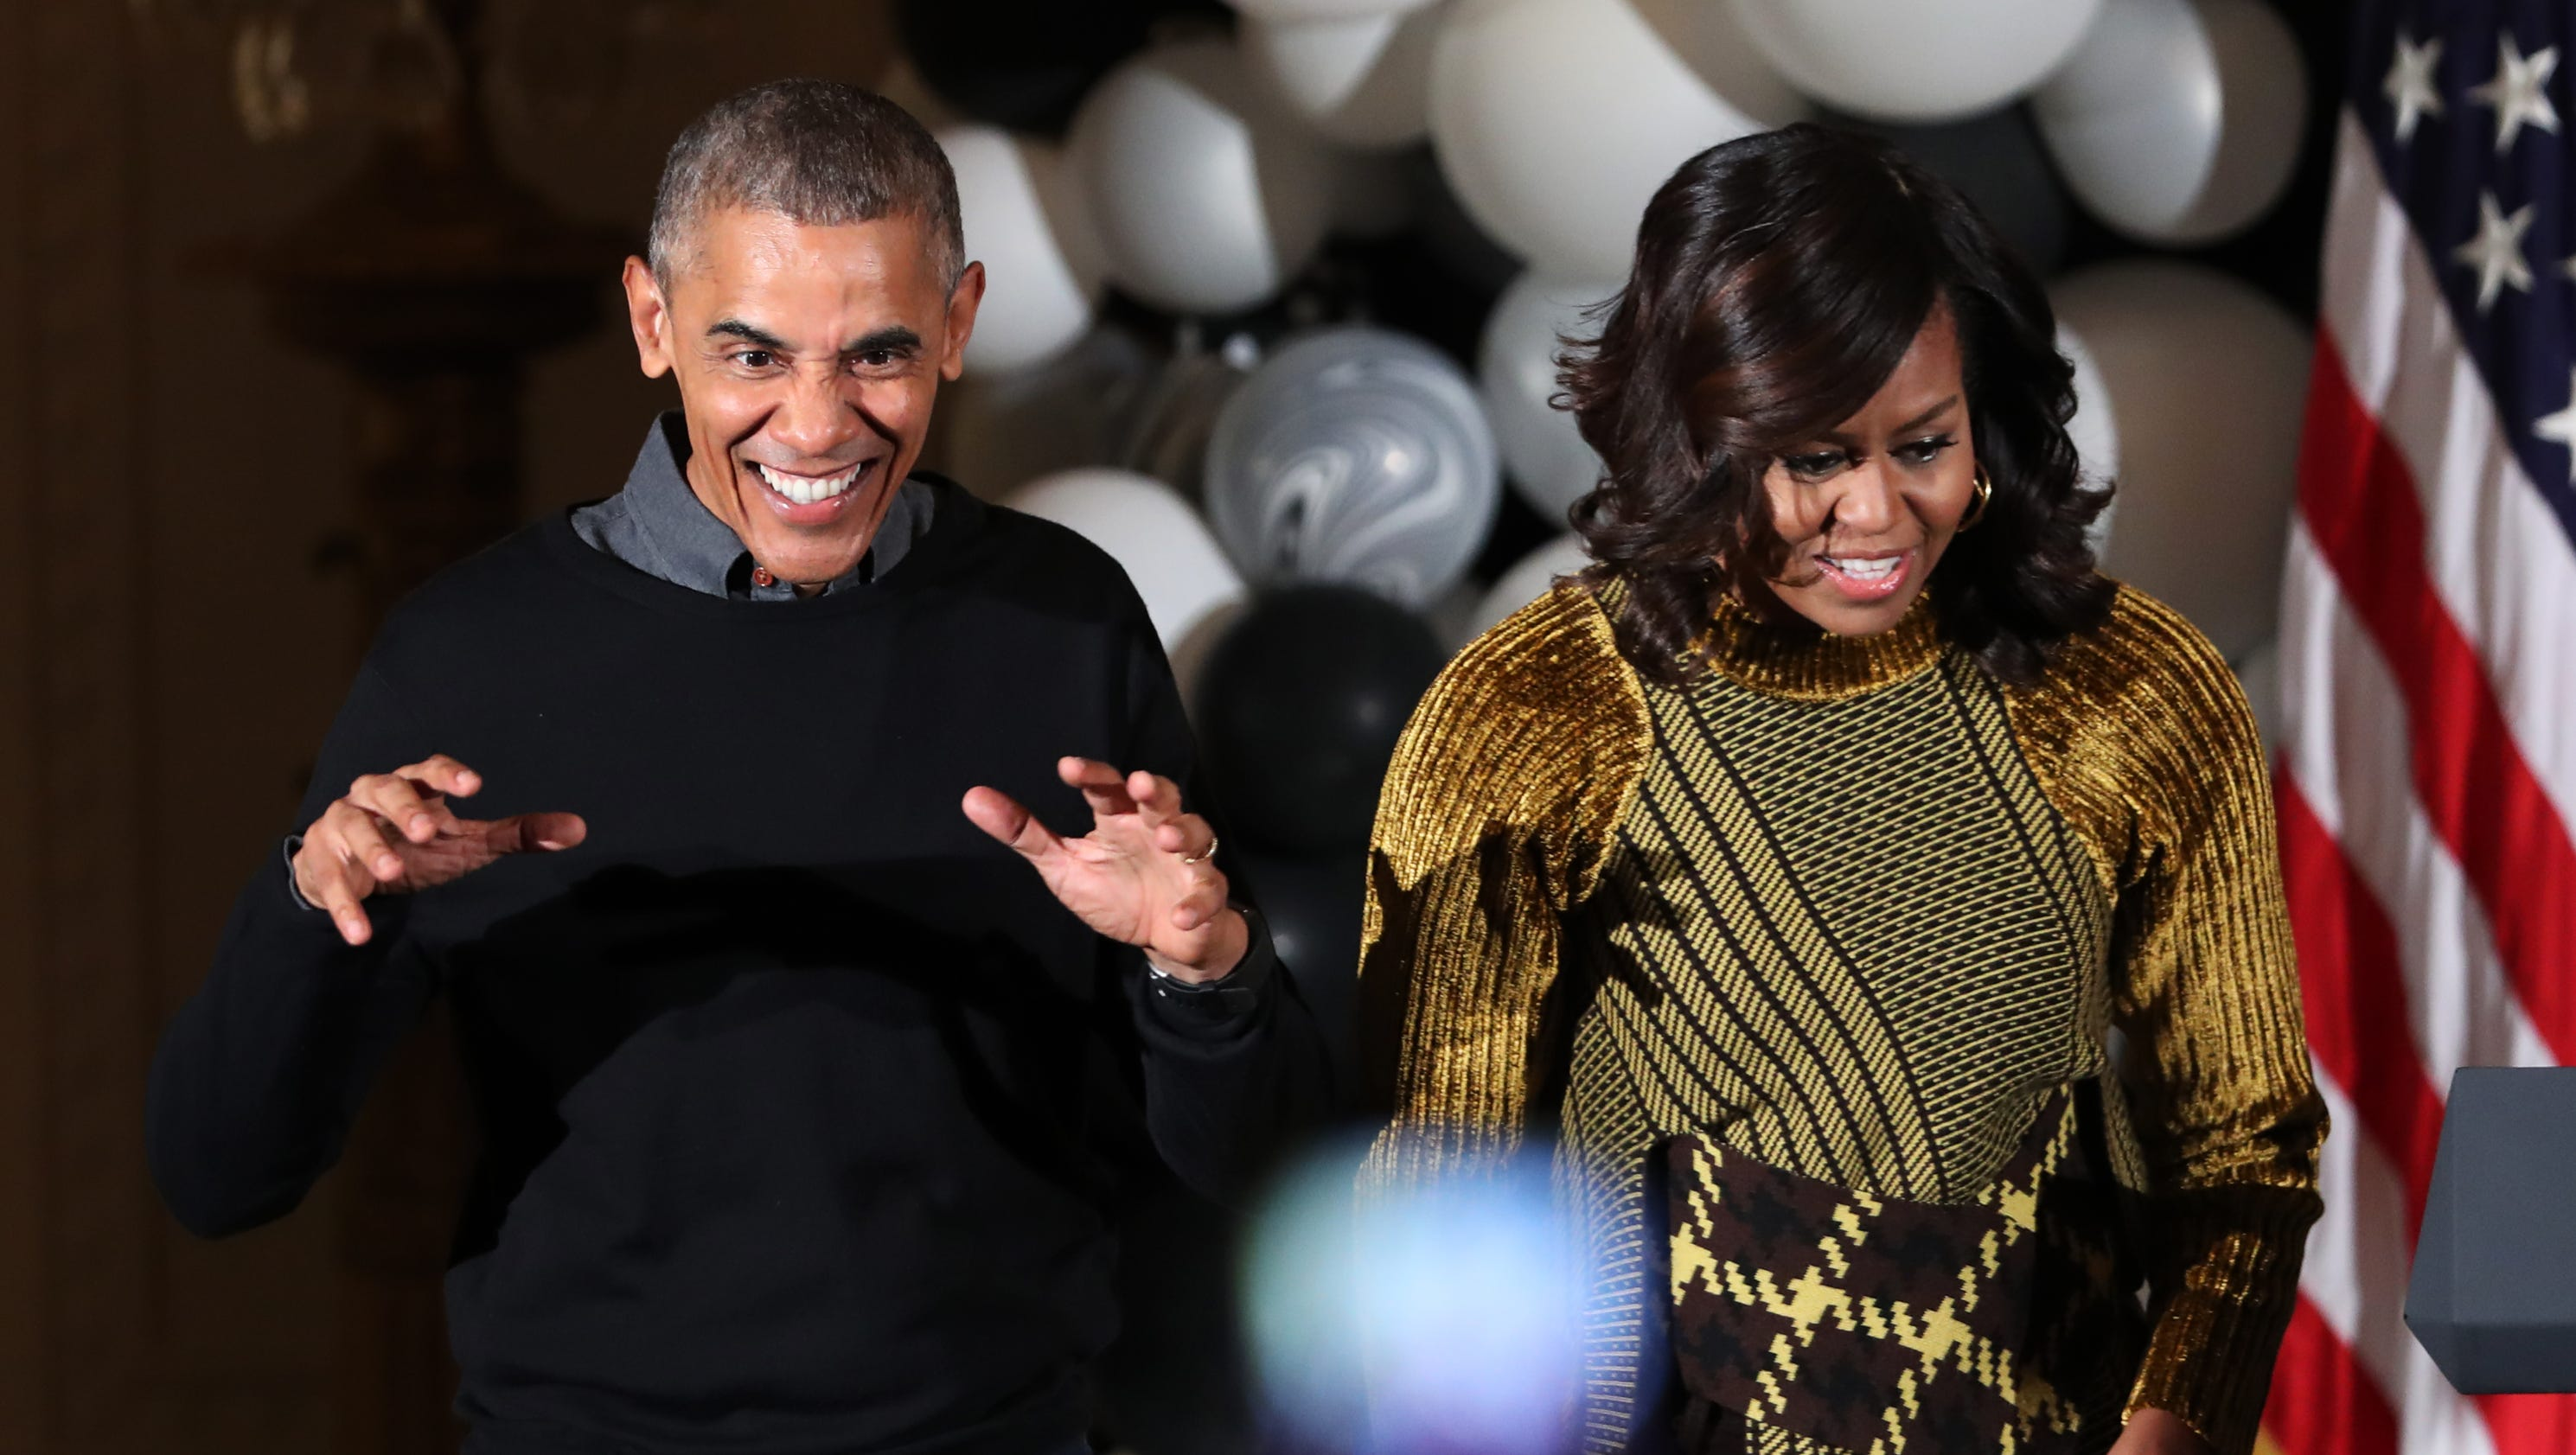 Obama First Family Obamas Dance To Thriller At White House Halloween Party